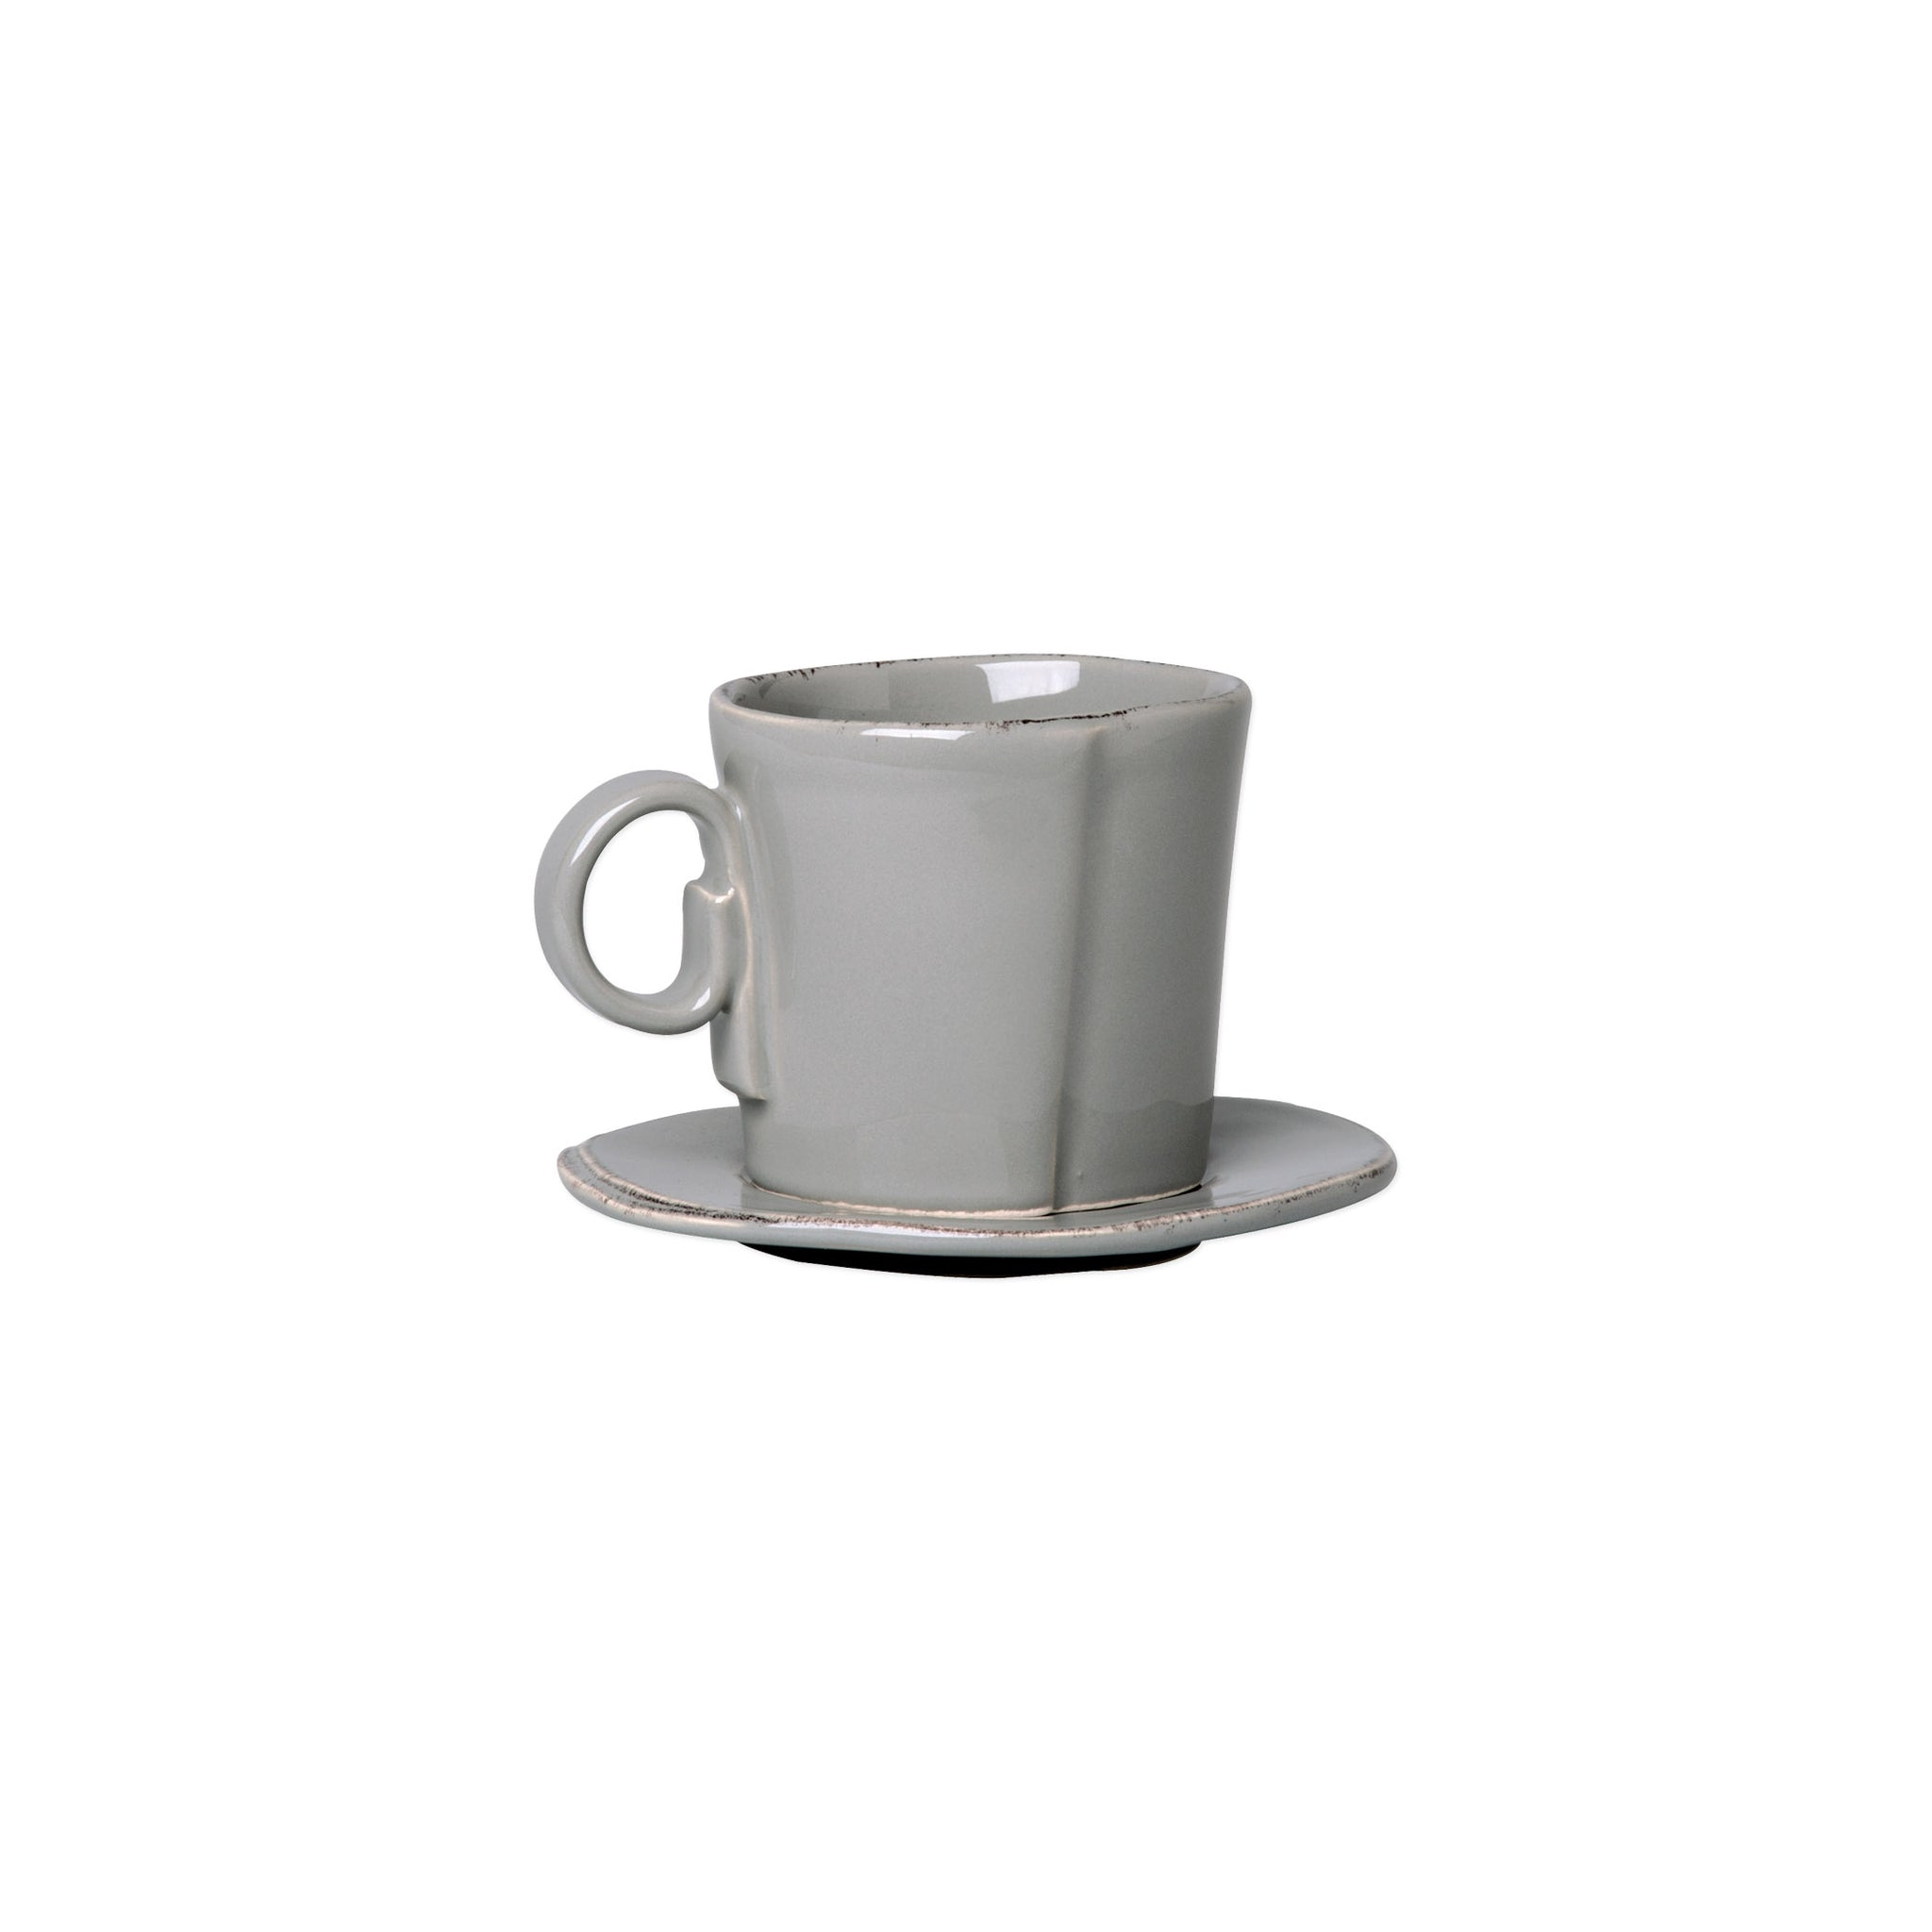 Lastra Espresso Cup and Saucer - Set of 4 - Gray